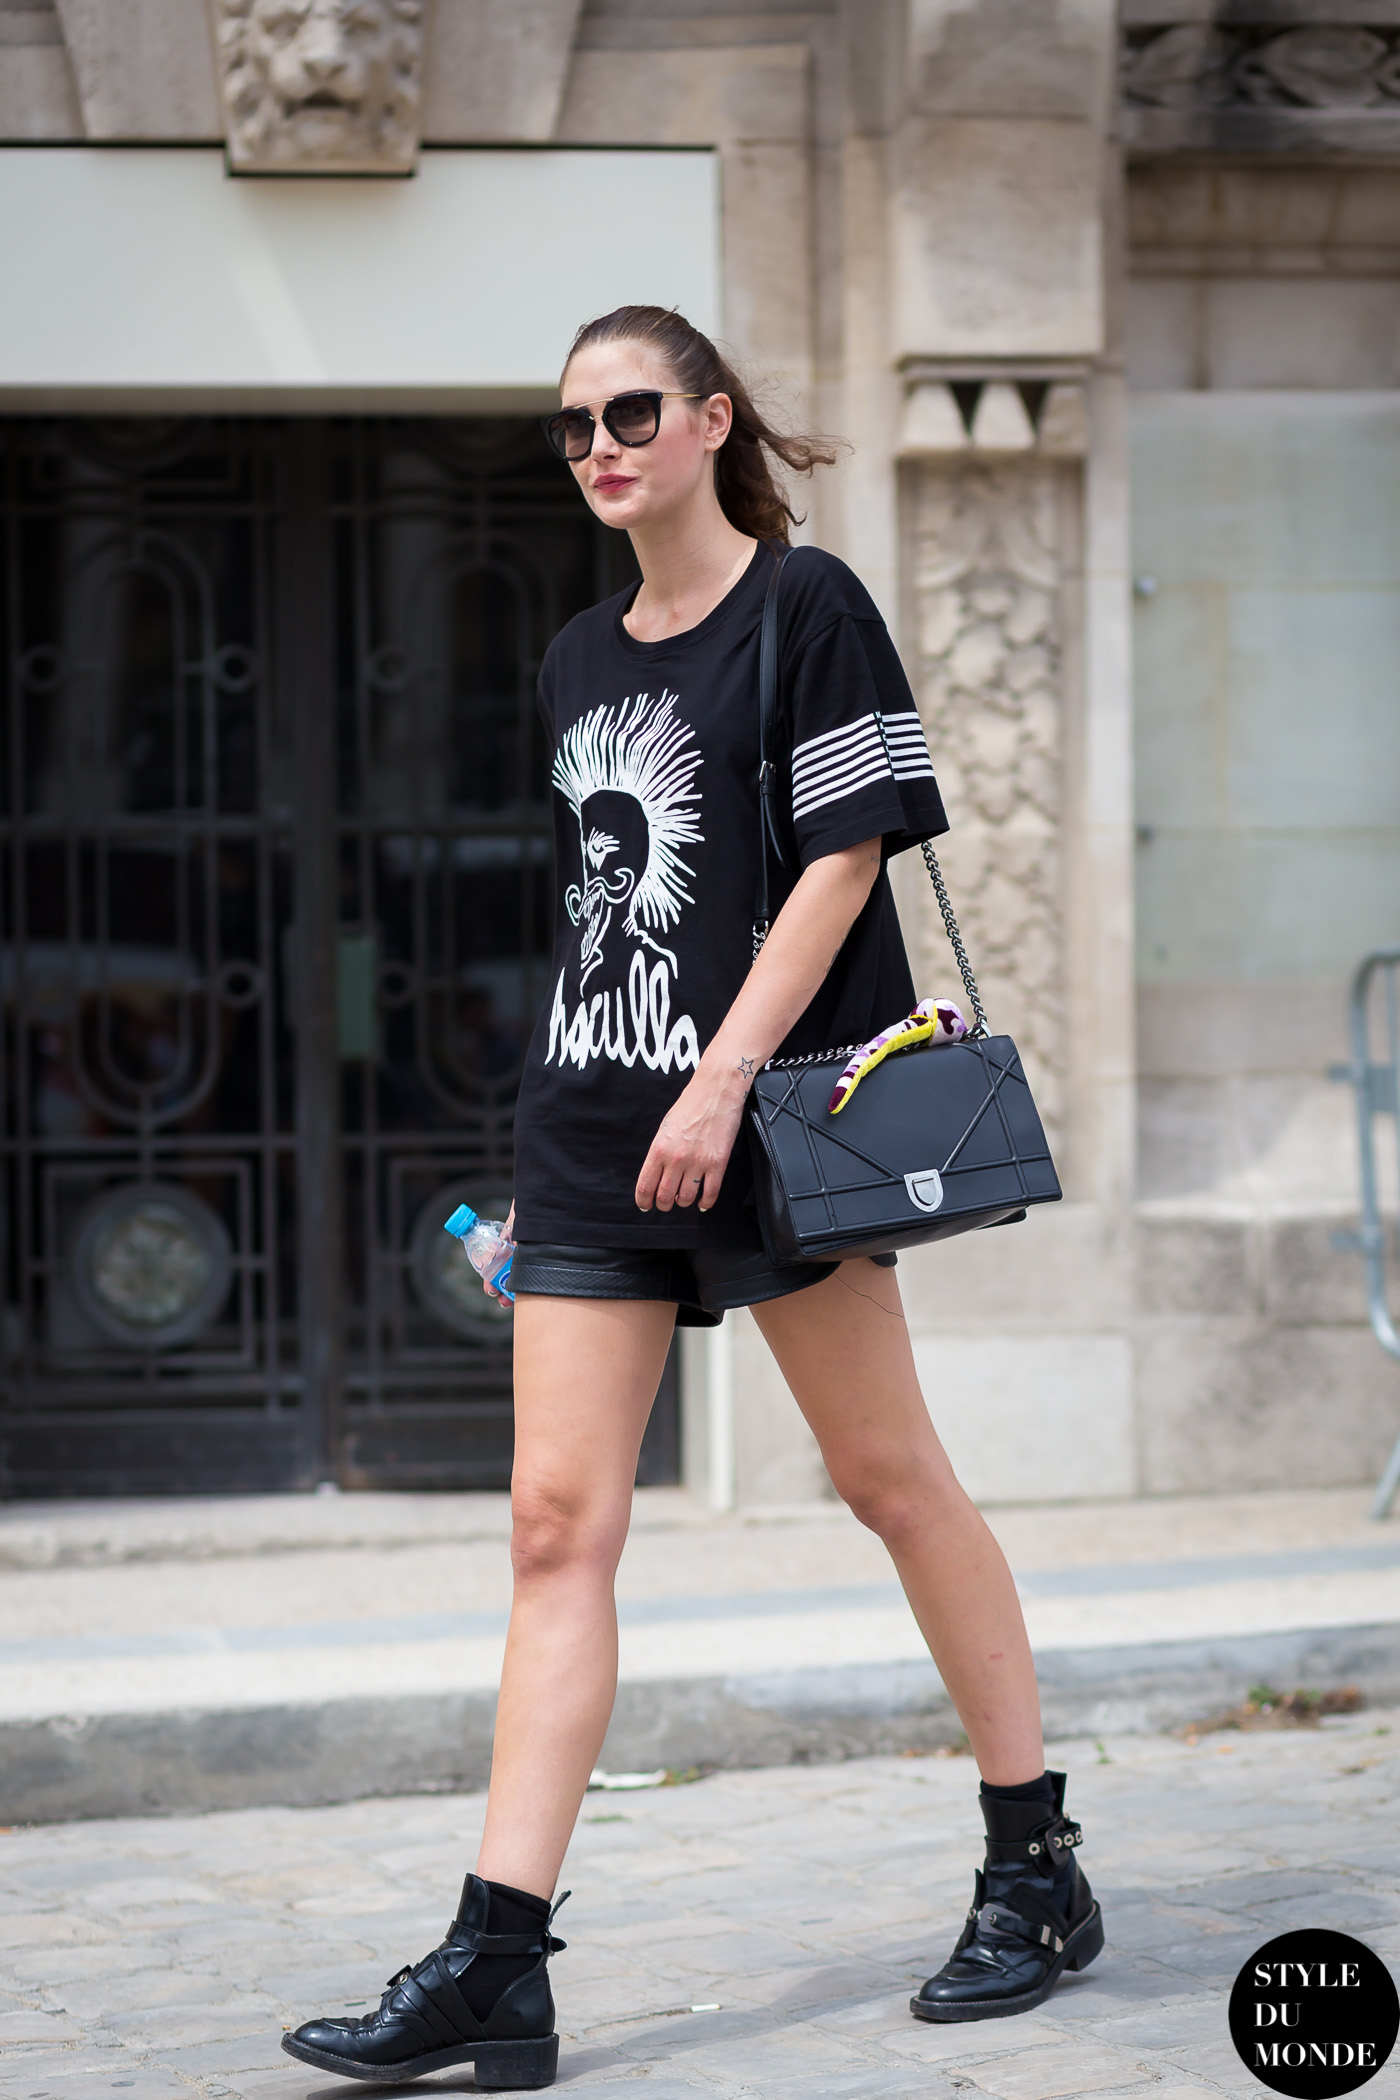 Catherine McNeil Street Style Street Fashion Streetsnaps by STYLEDUMONDE Street Style Fashion Photography